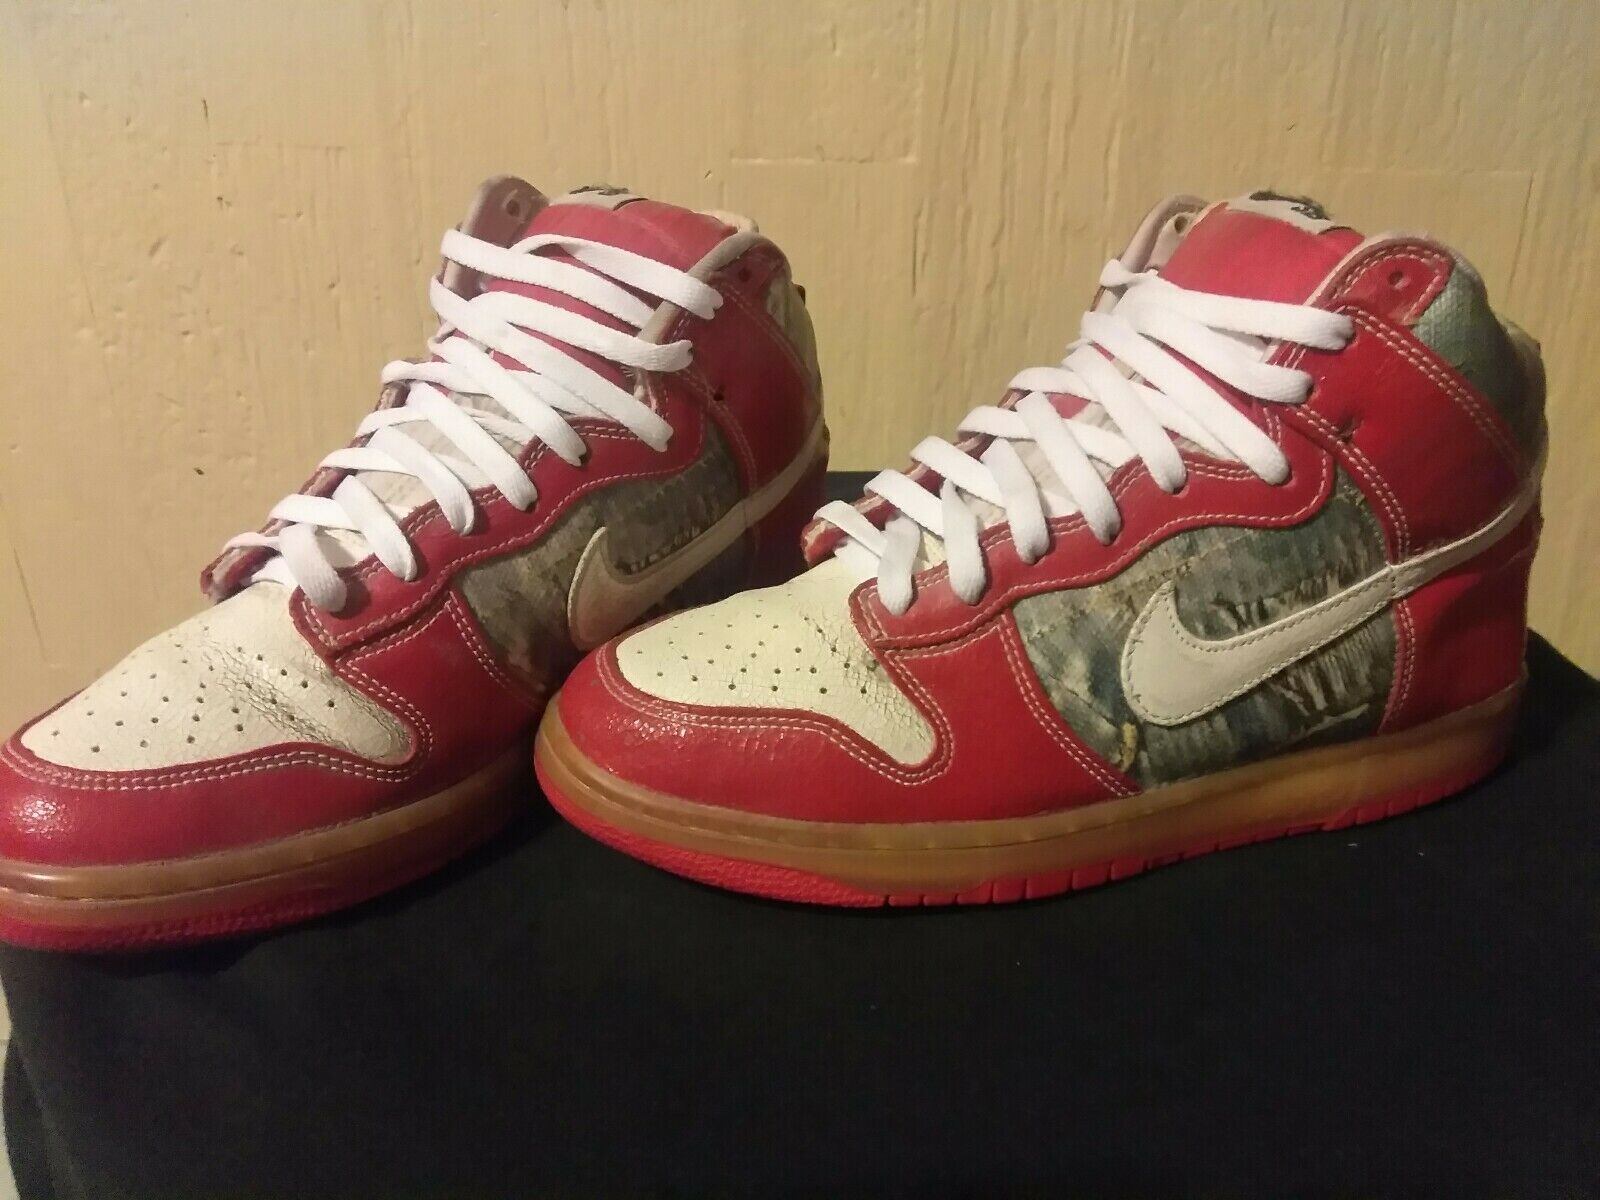 Nike Sb High shoes Goo Size 9.5 look  Best price on